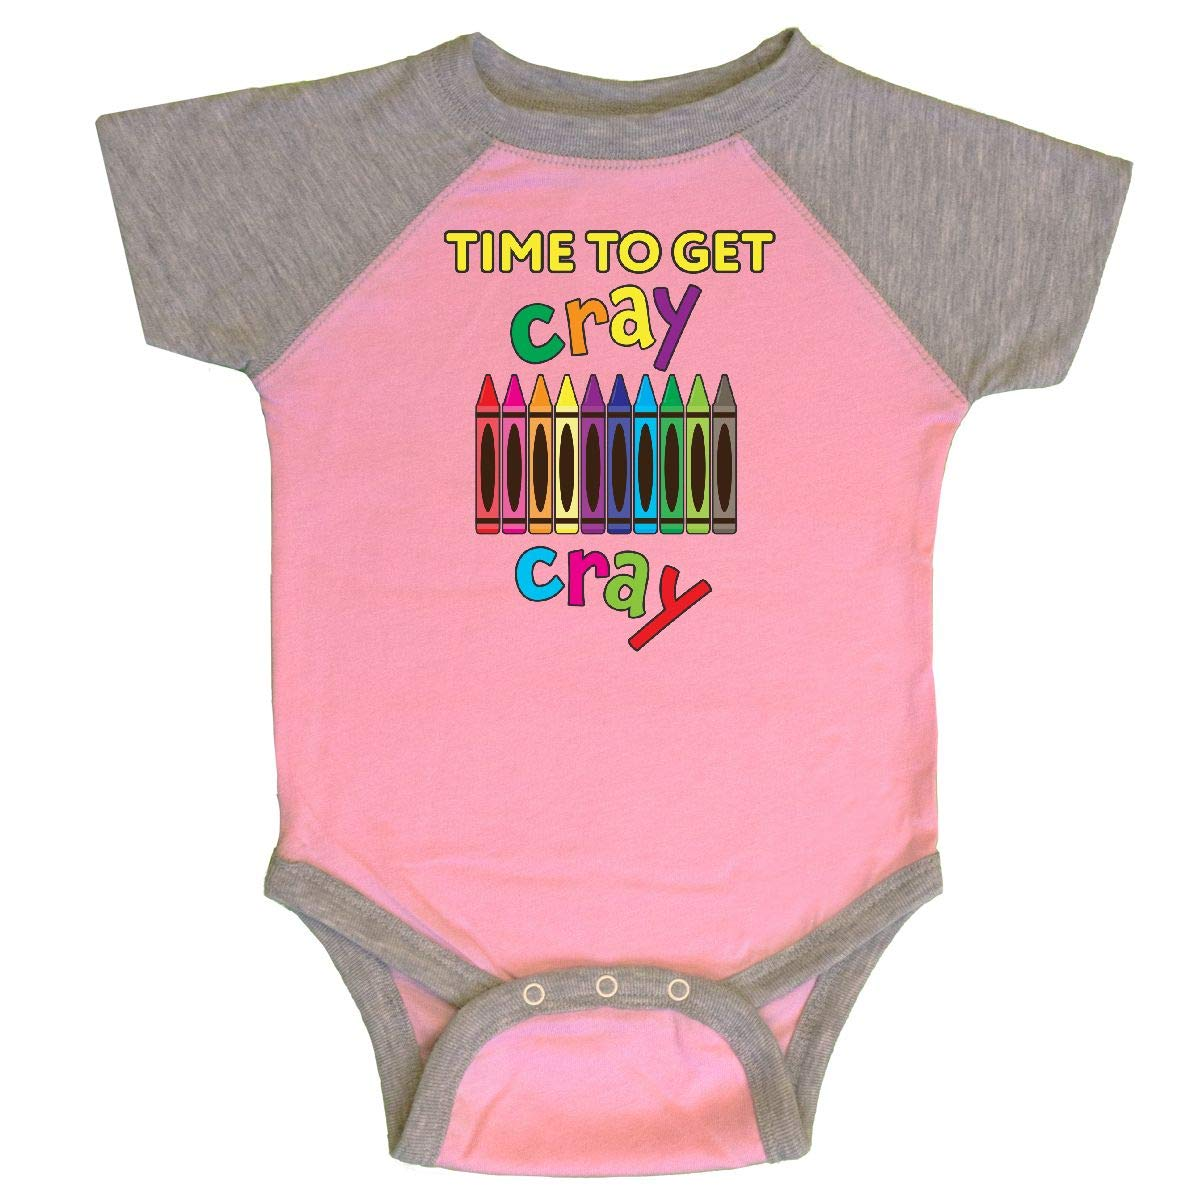 eda25a93 Amazon.com: inktastic - Time to Get Cray Cray Crayons Humor Infant Creeper  28b39: Clothing